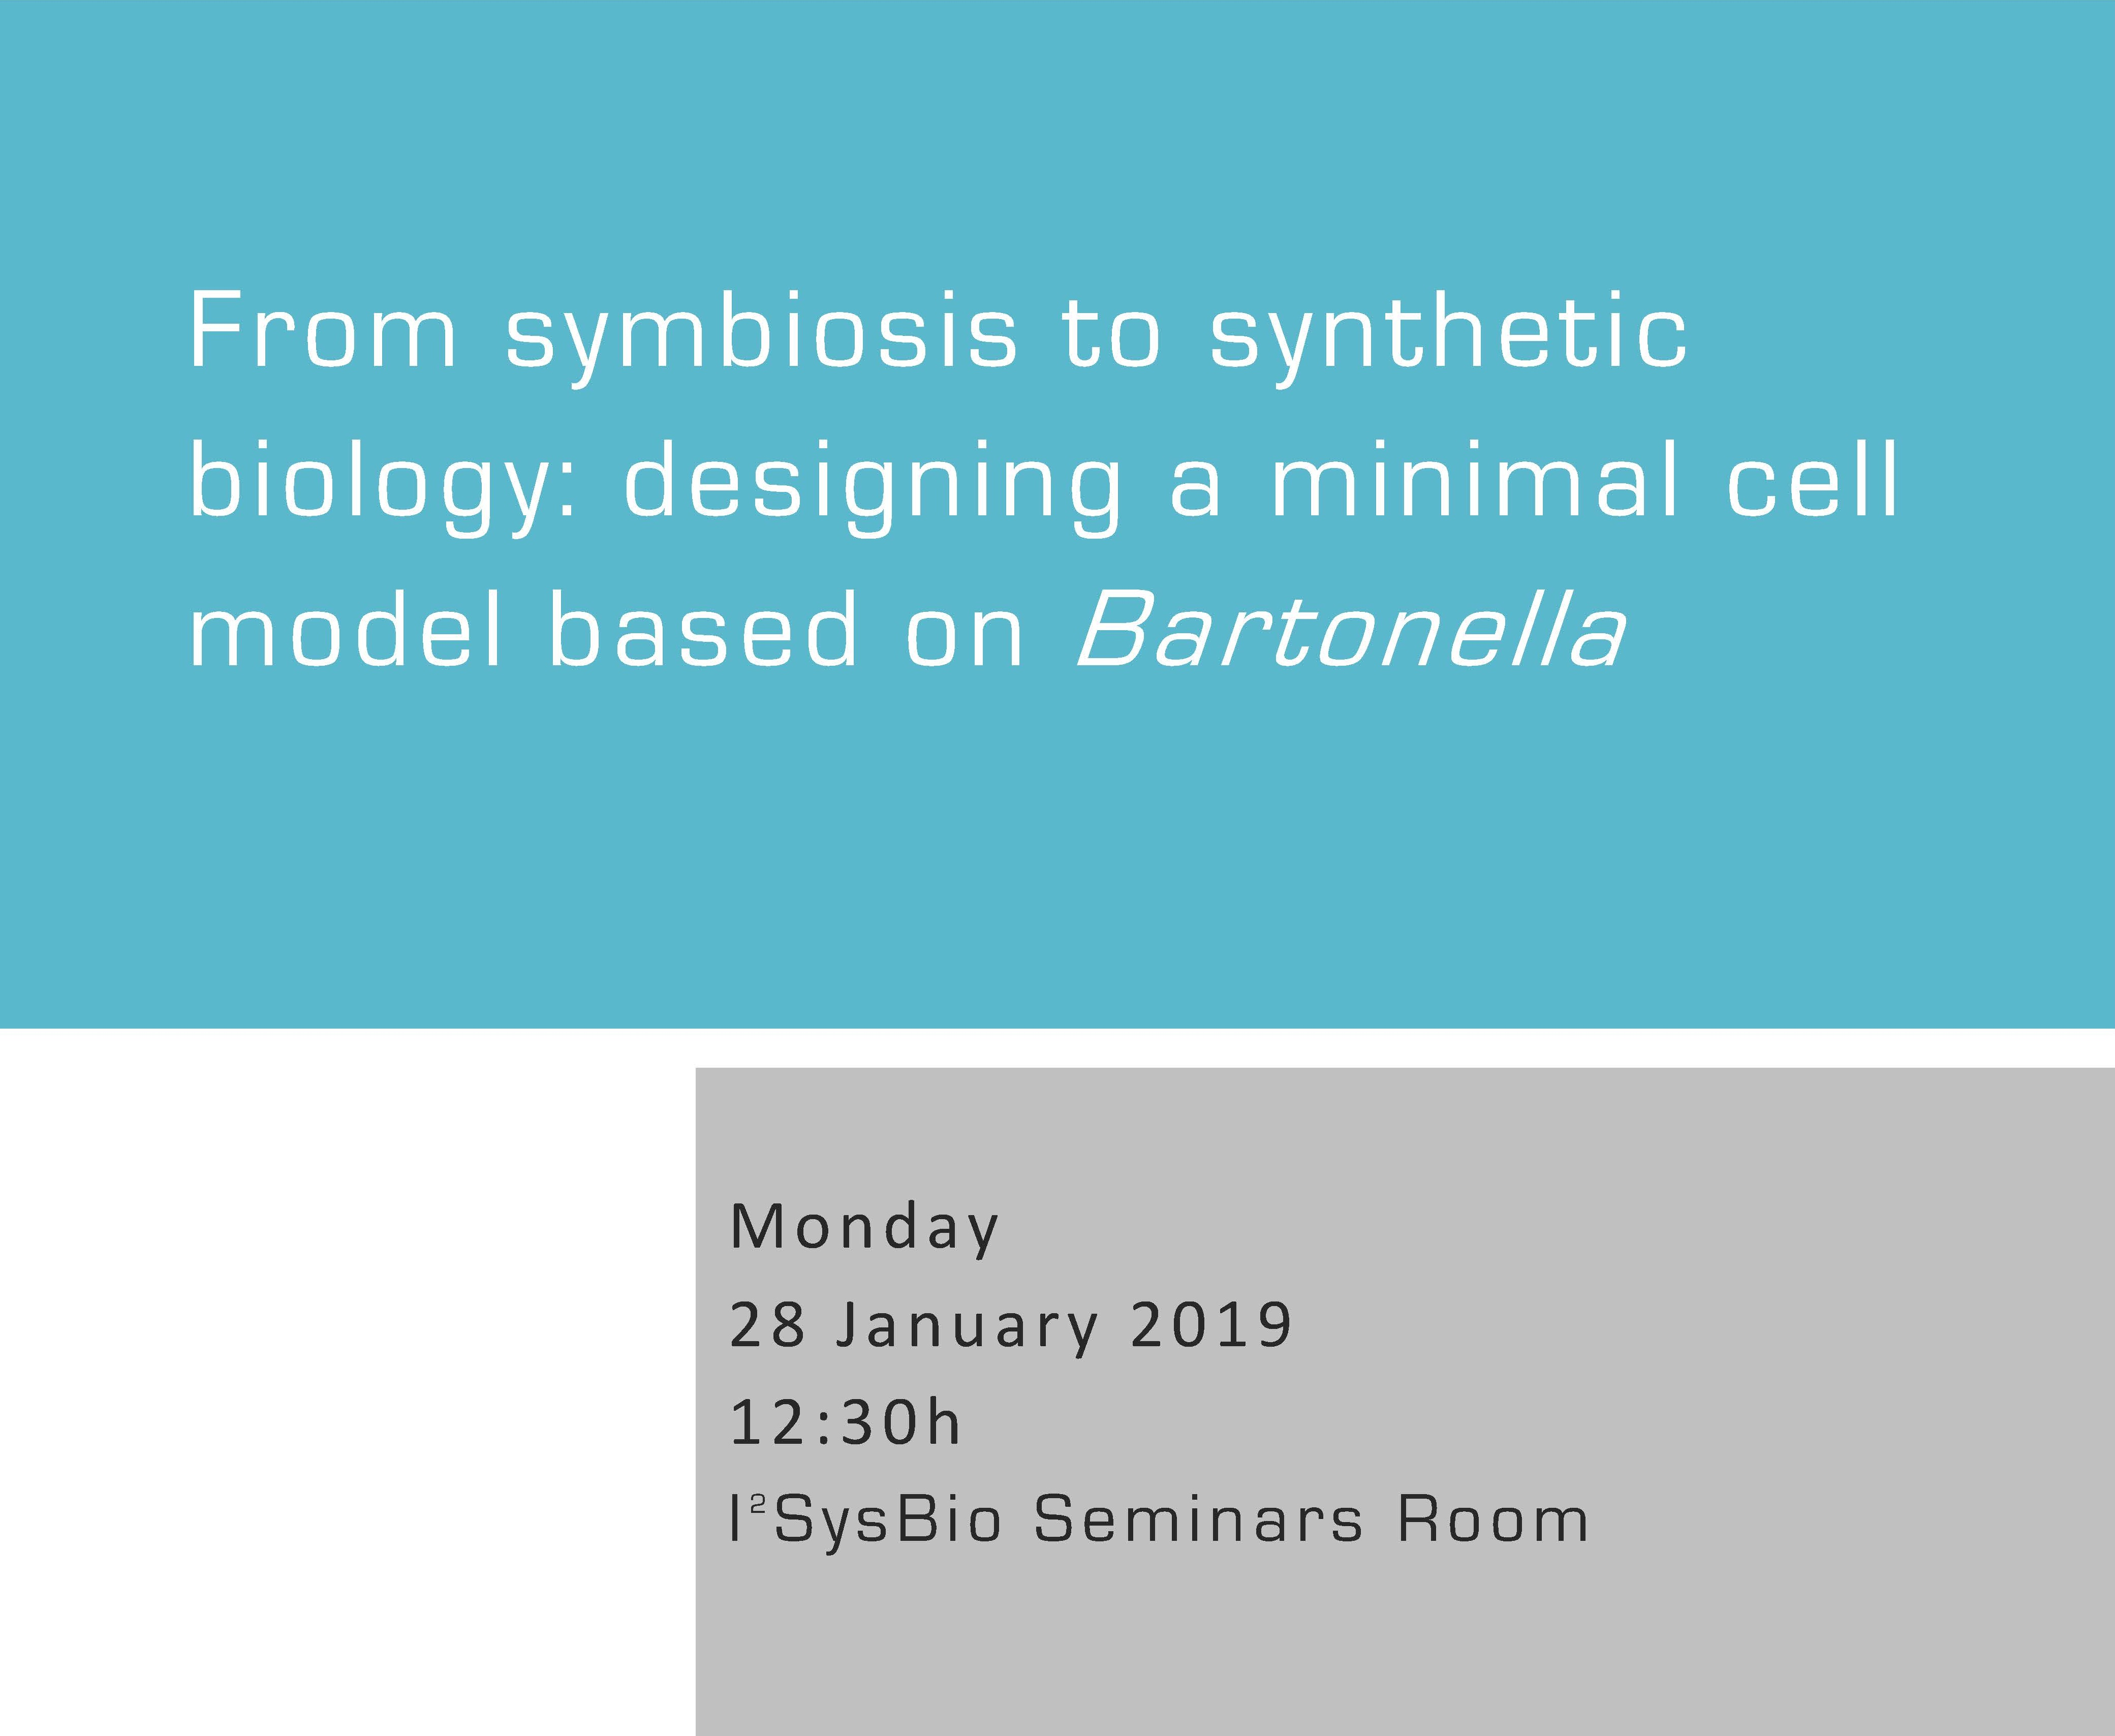 From symbiosis to synthetic biology: designing a minimal cell model based on Bartonella